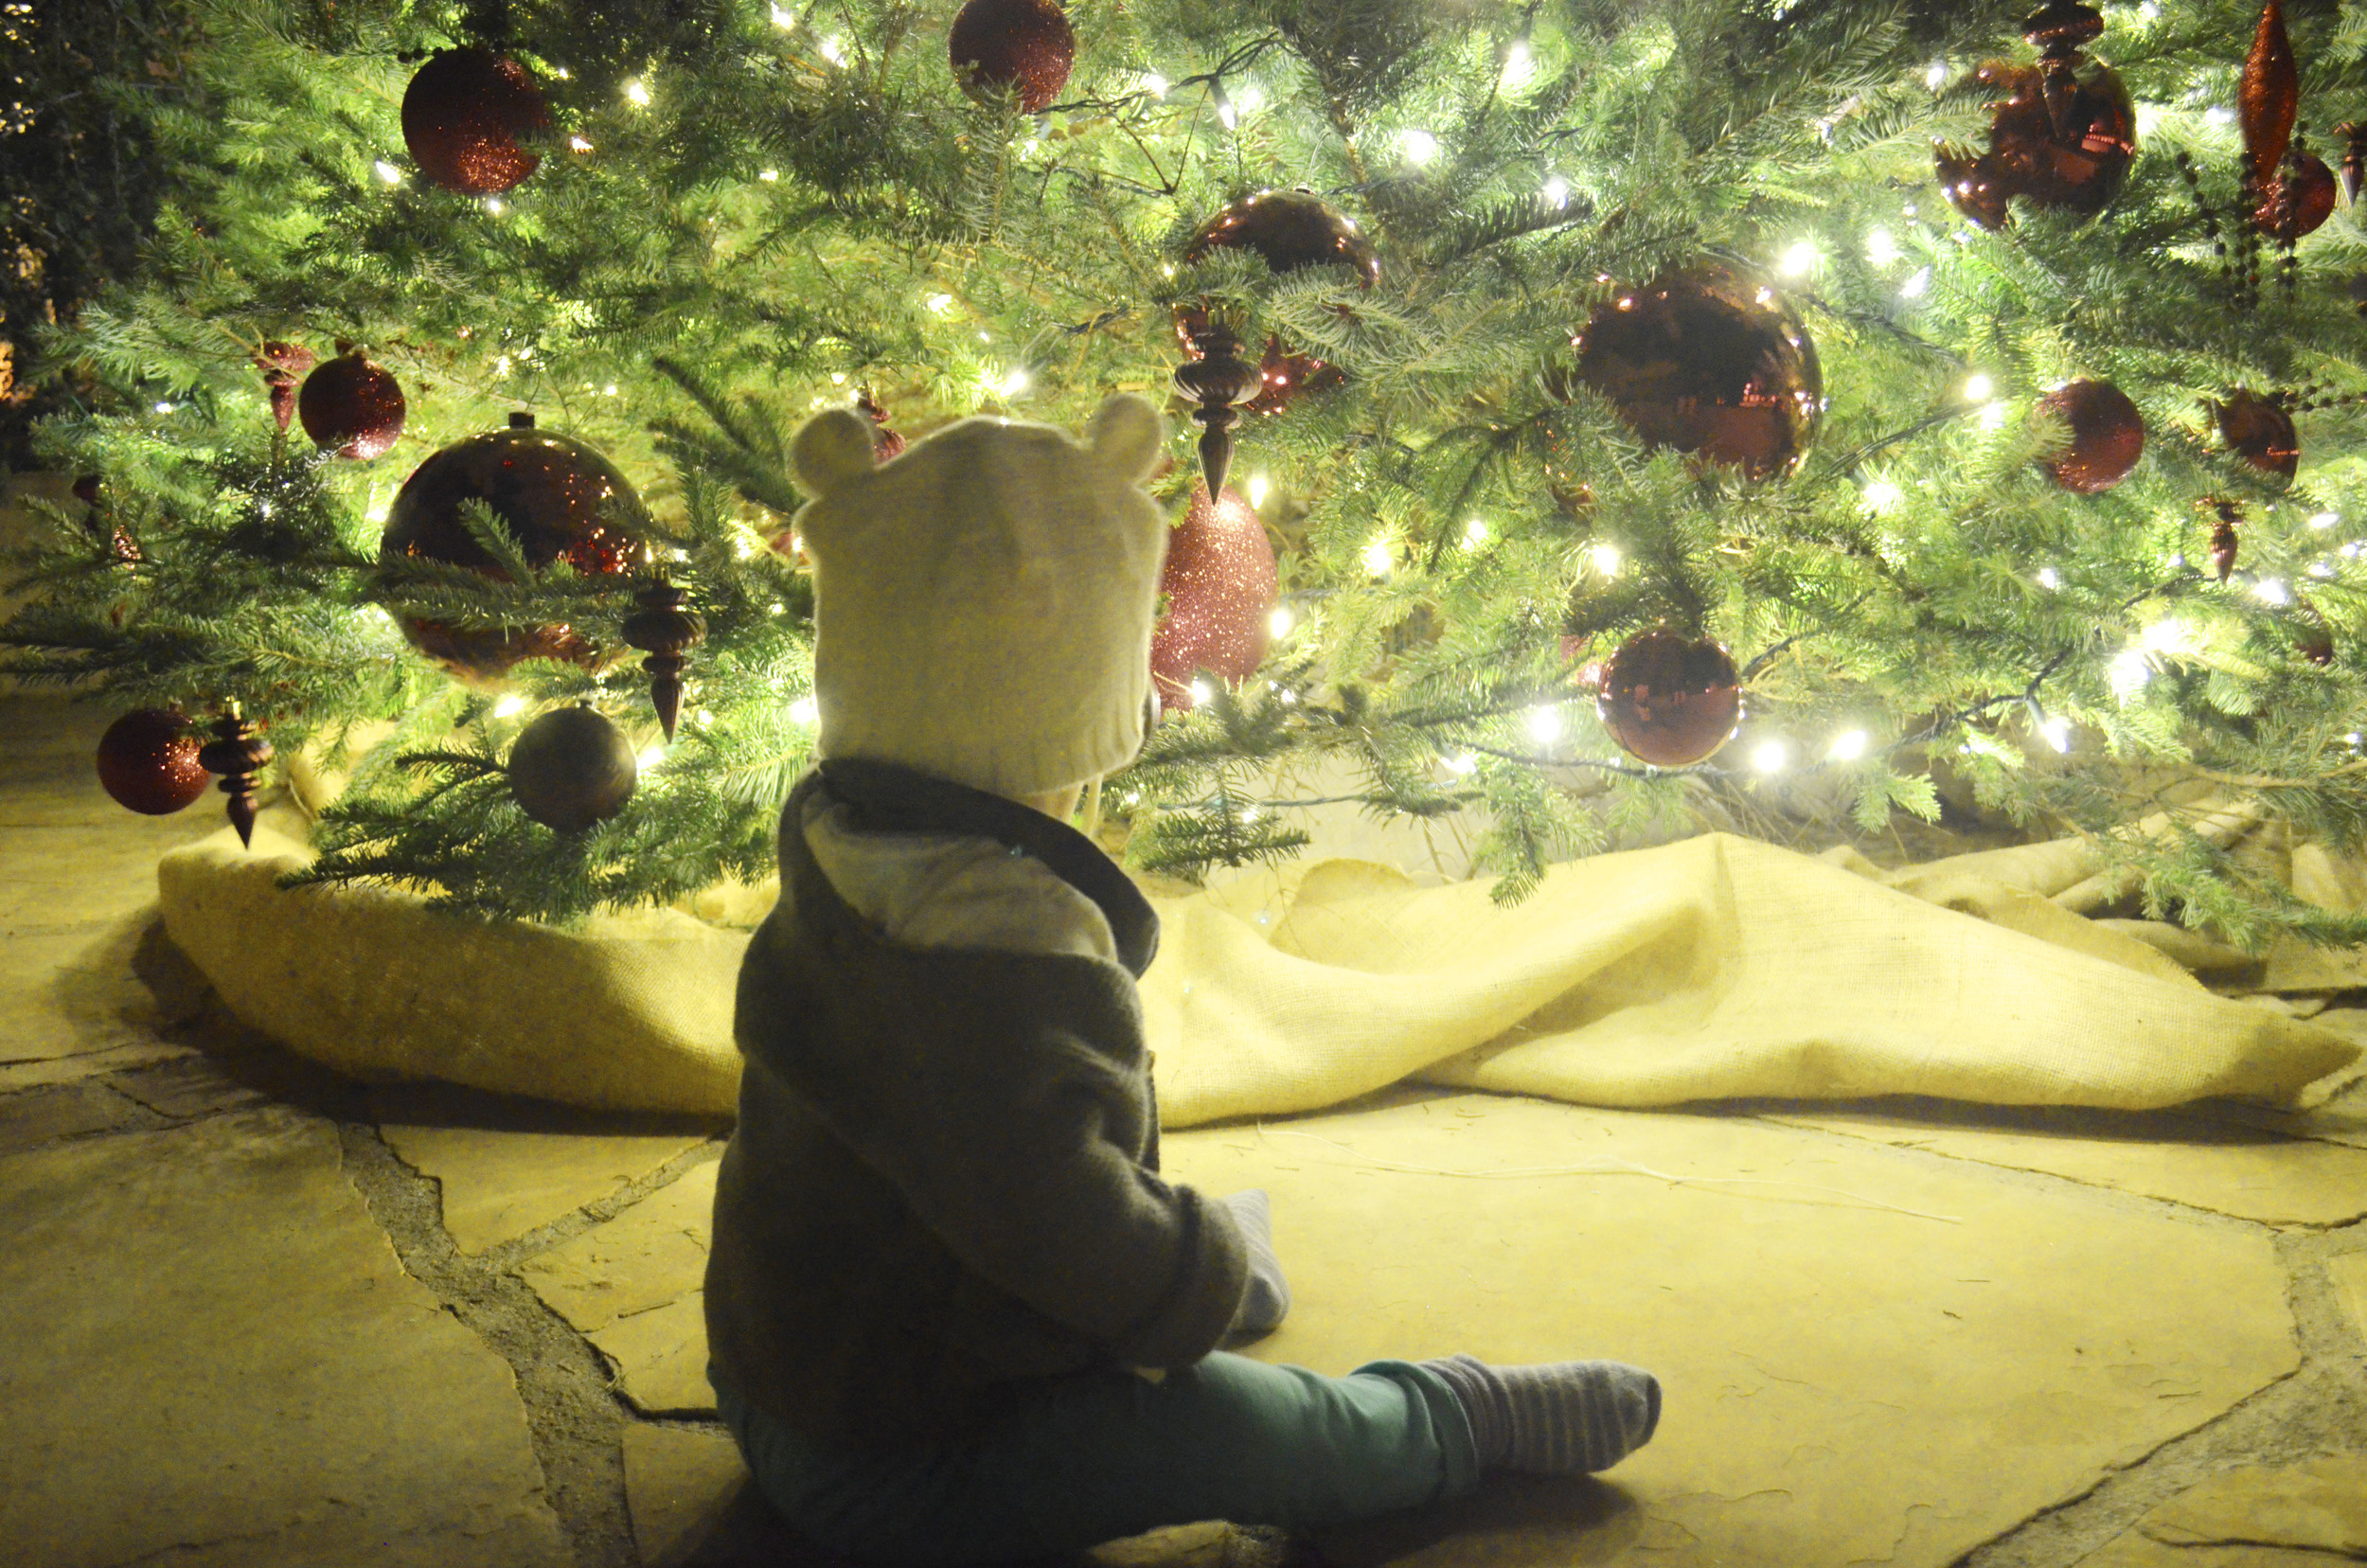 Baby sitting under christmas tree | Holiday Traditions to do with your family